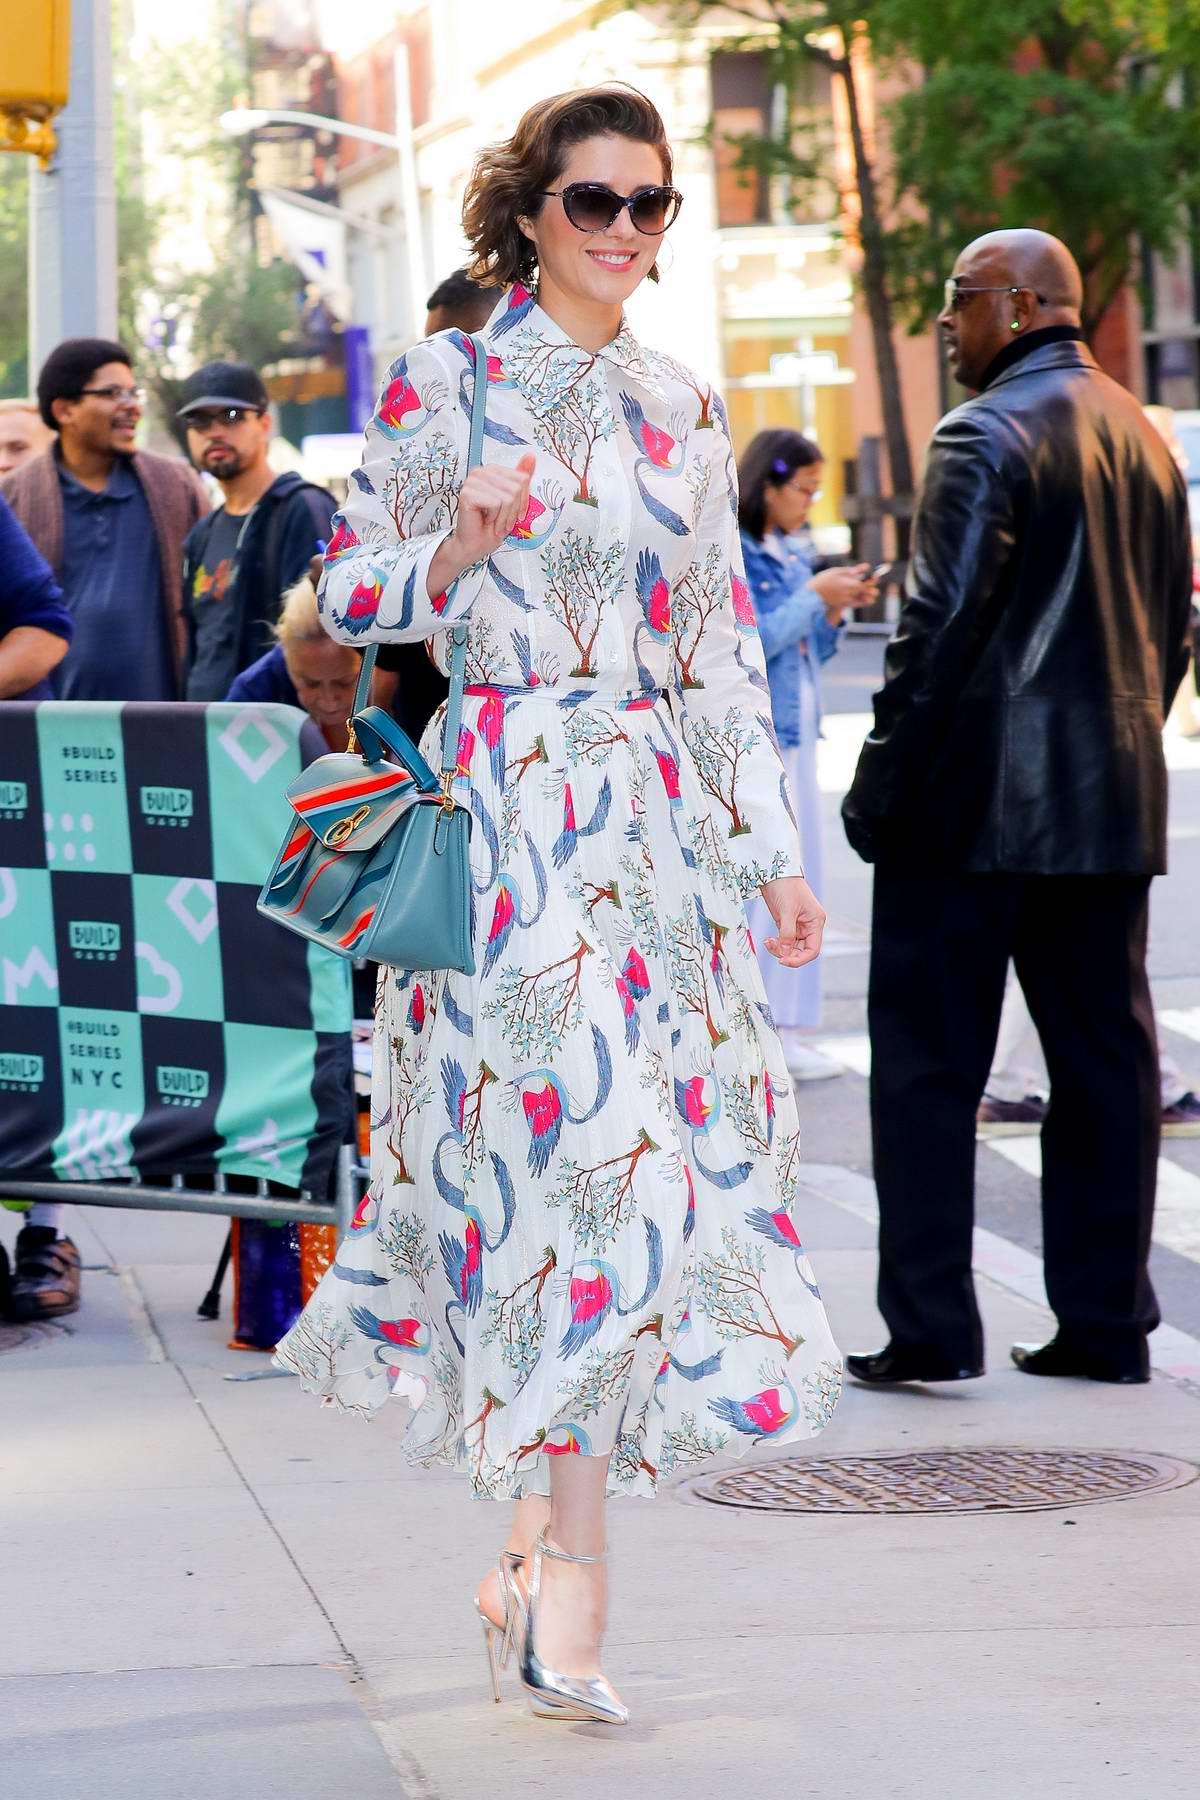 Mary Elizabeth Winstead spotted in a white and pink patterned dress outside the AOL Build Studios in New York City